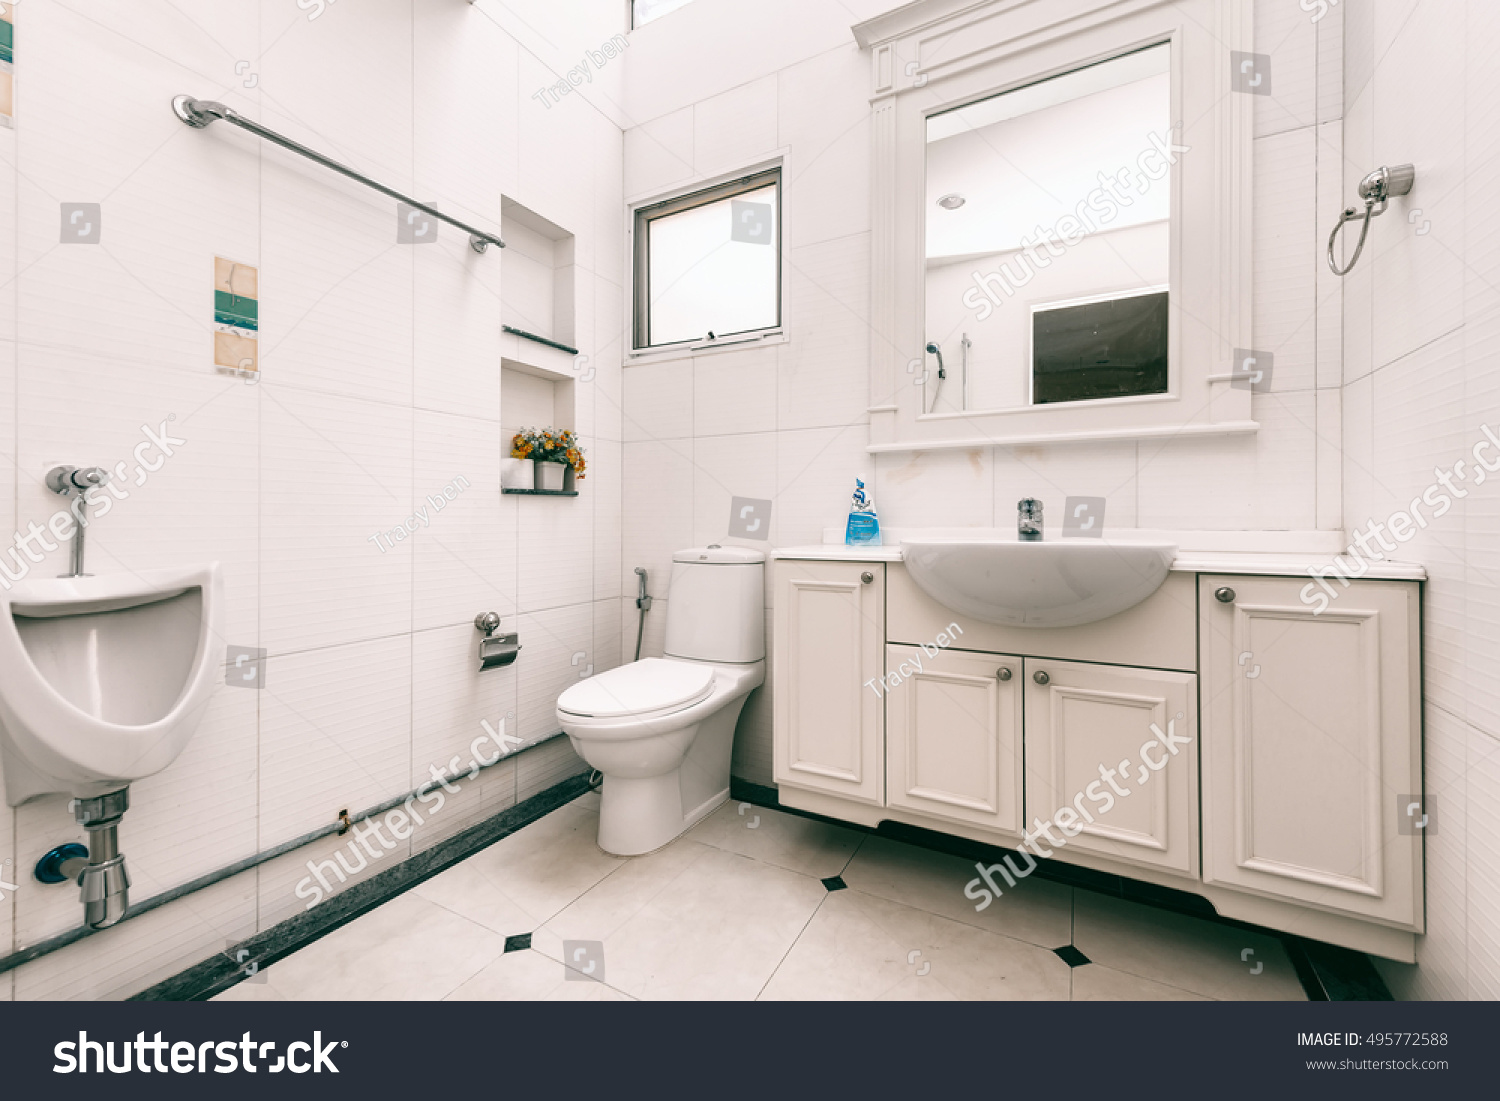 White toilet bowl bathroom stock photo 495772588 shutterstock - Lavish white and grey kitchen for hygienic and bright view ...